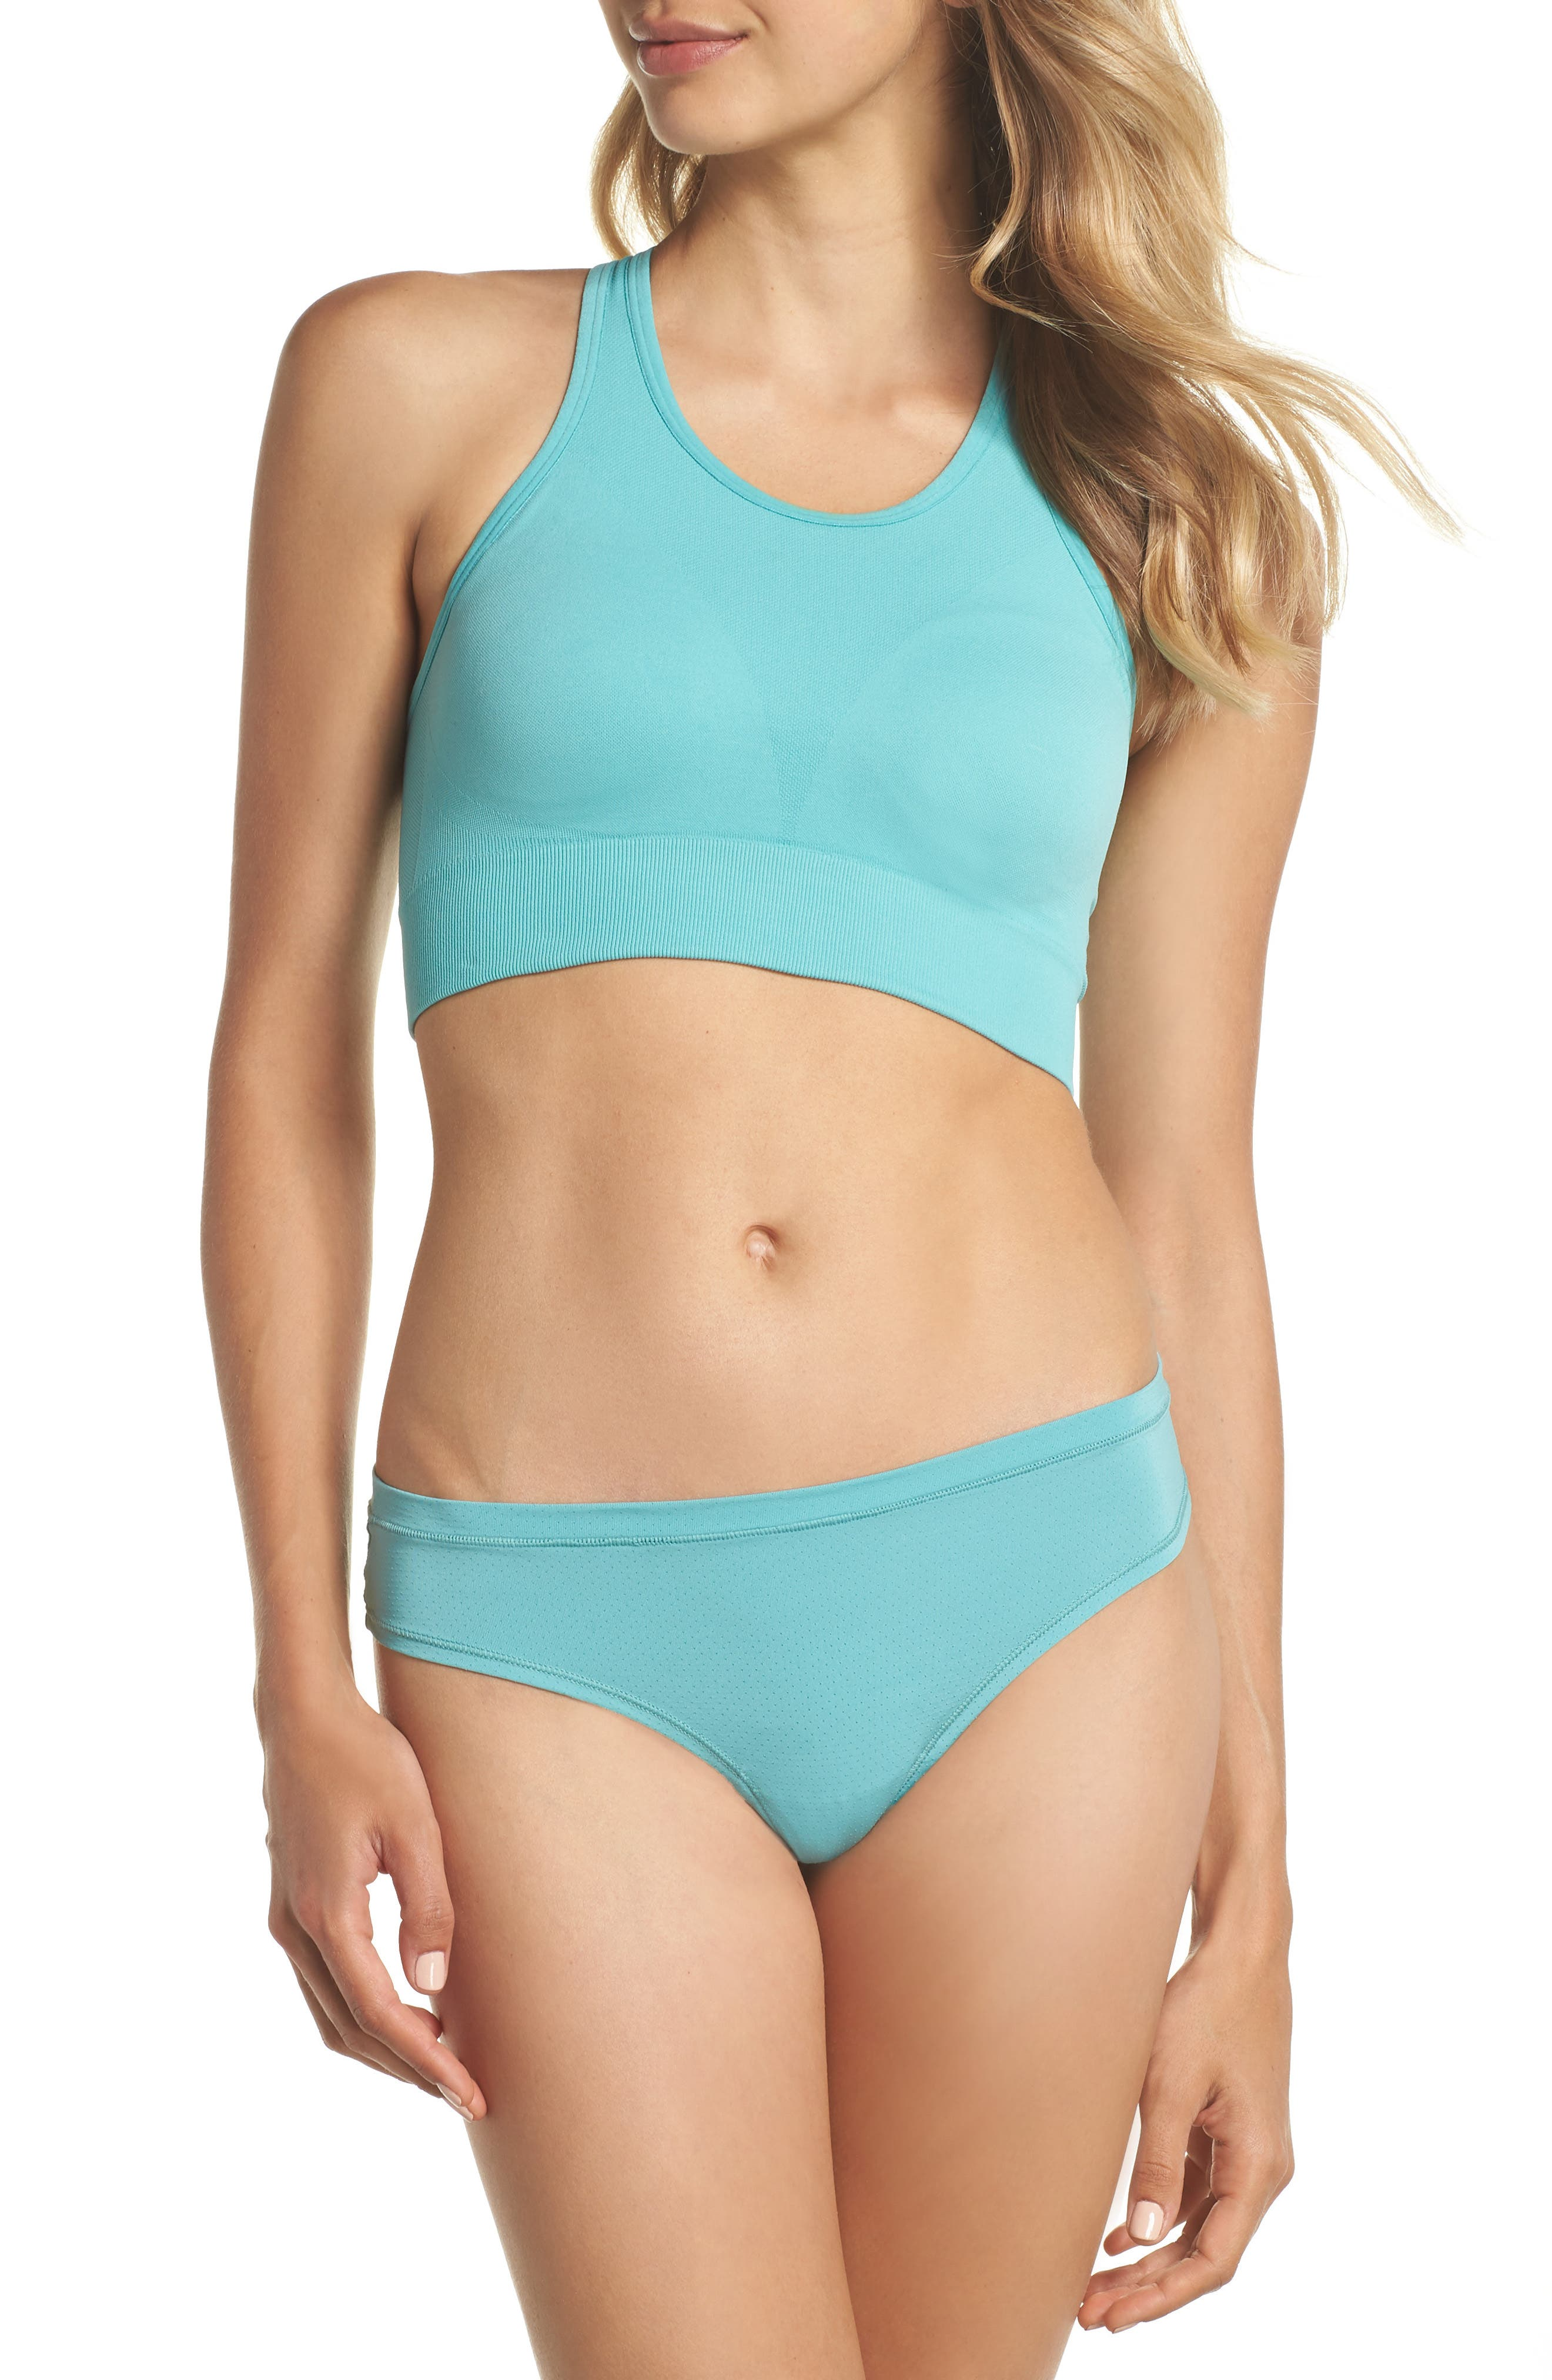 Relay Sports Bra,                             Alternate thumbnail 8, color,                             TEAL MEADOW